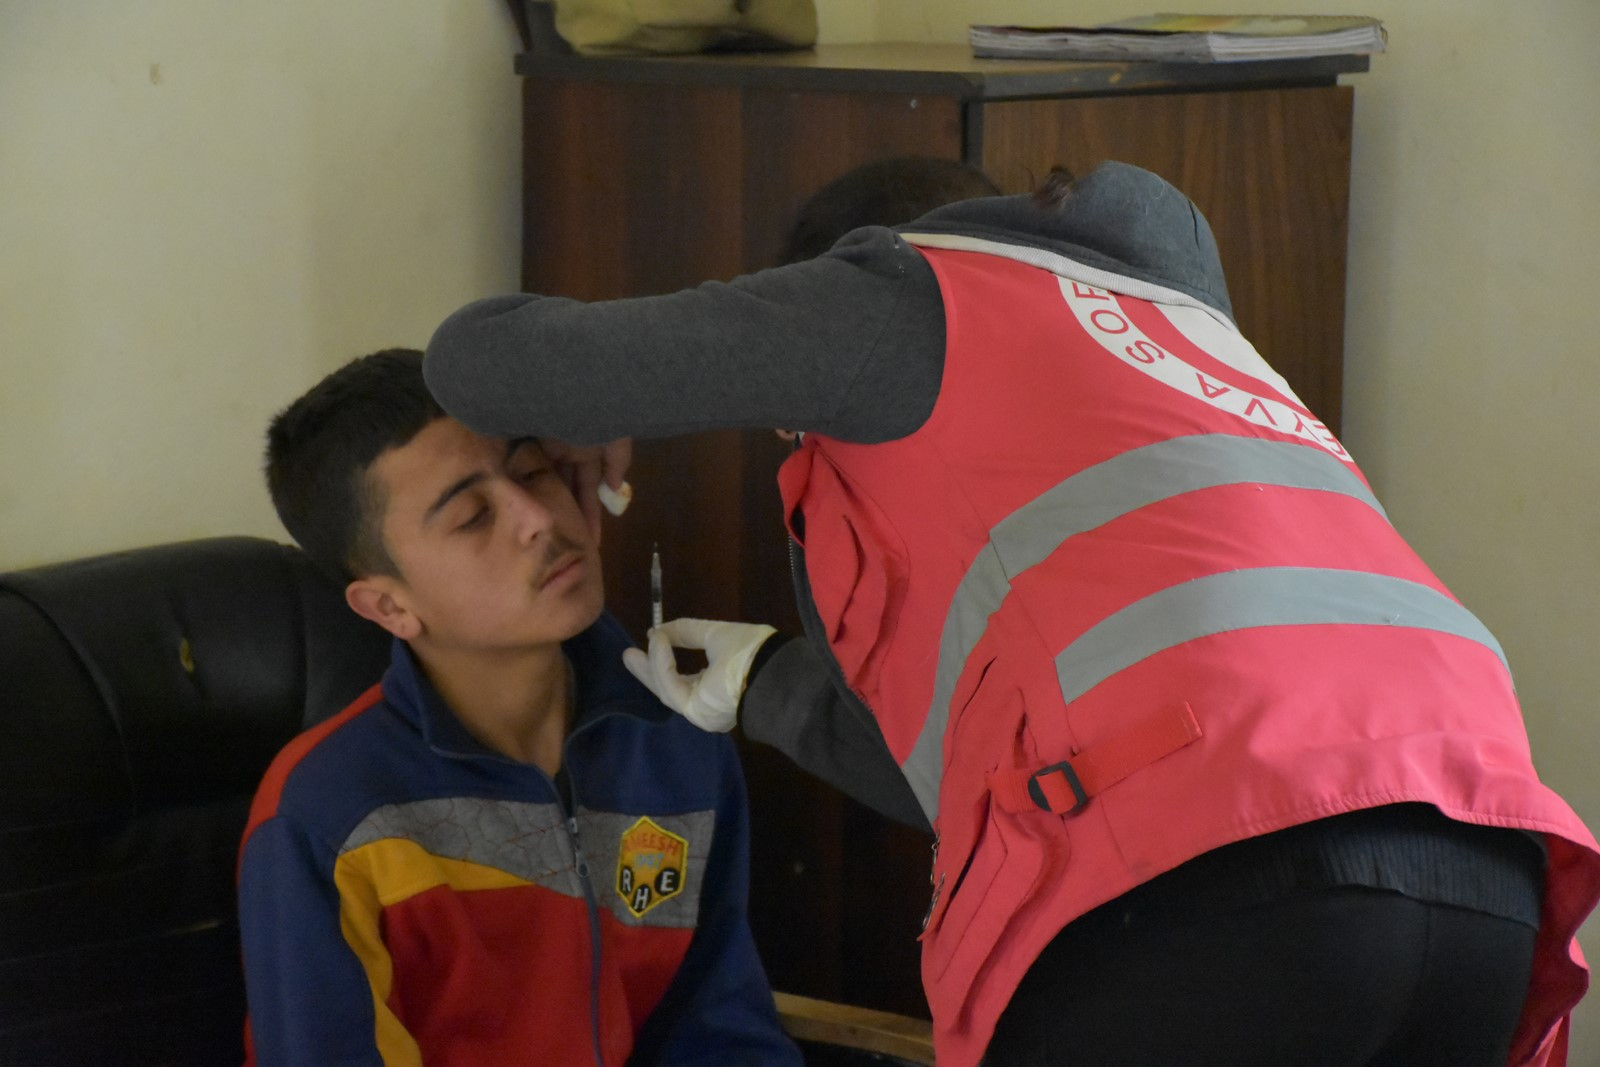 Despite poor capabilities, Kurdish Red Crescent provides treatment